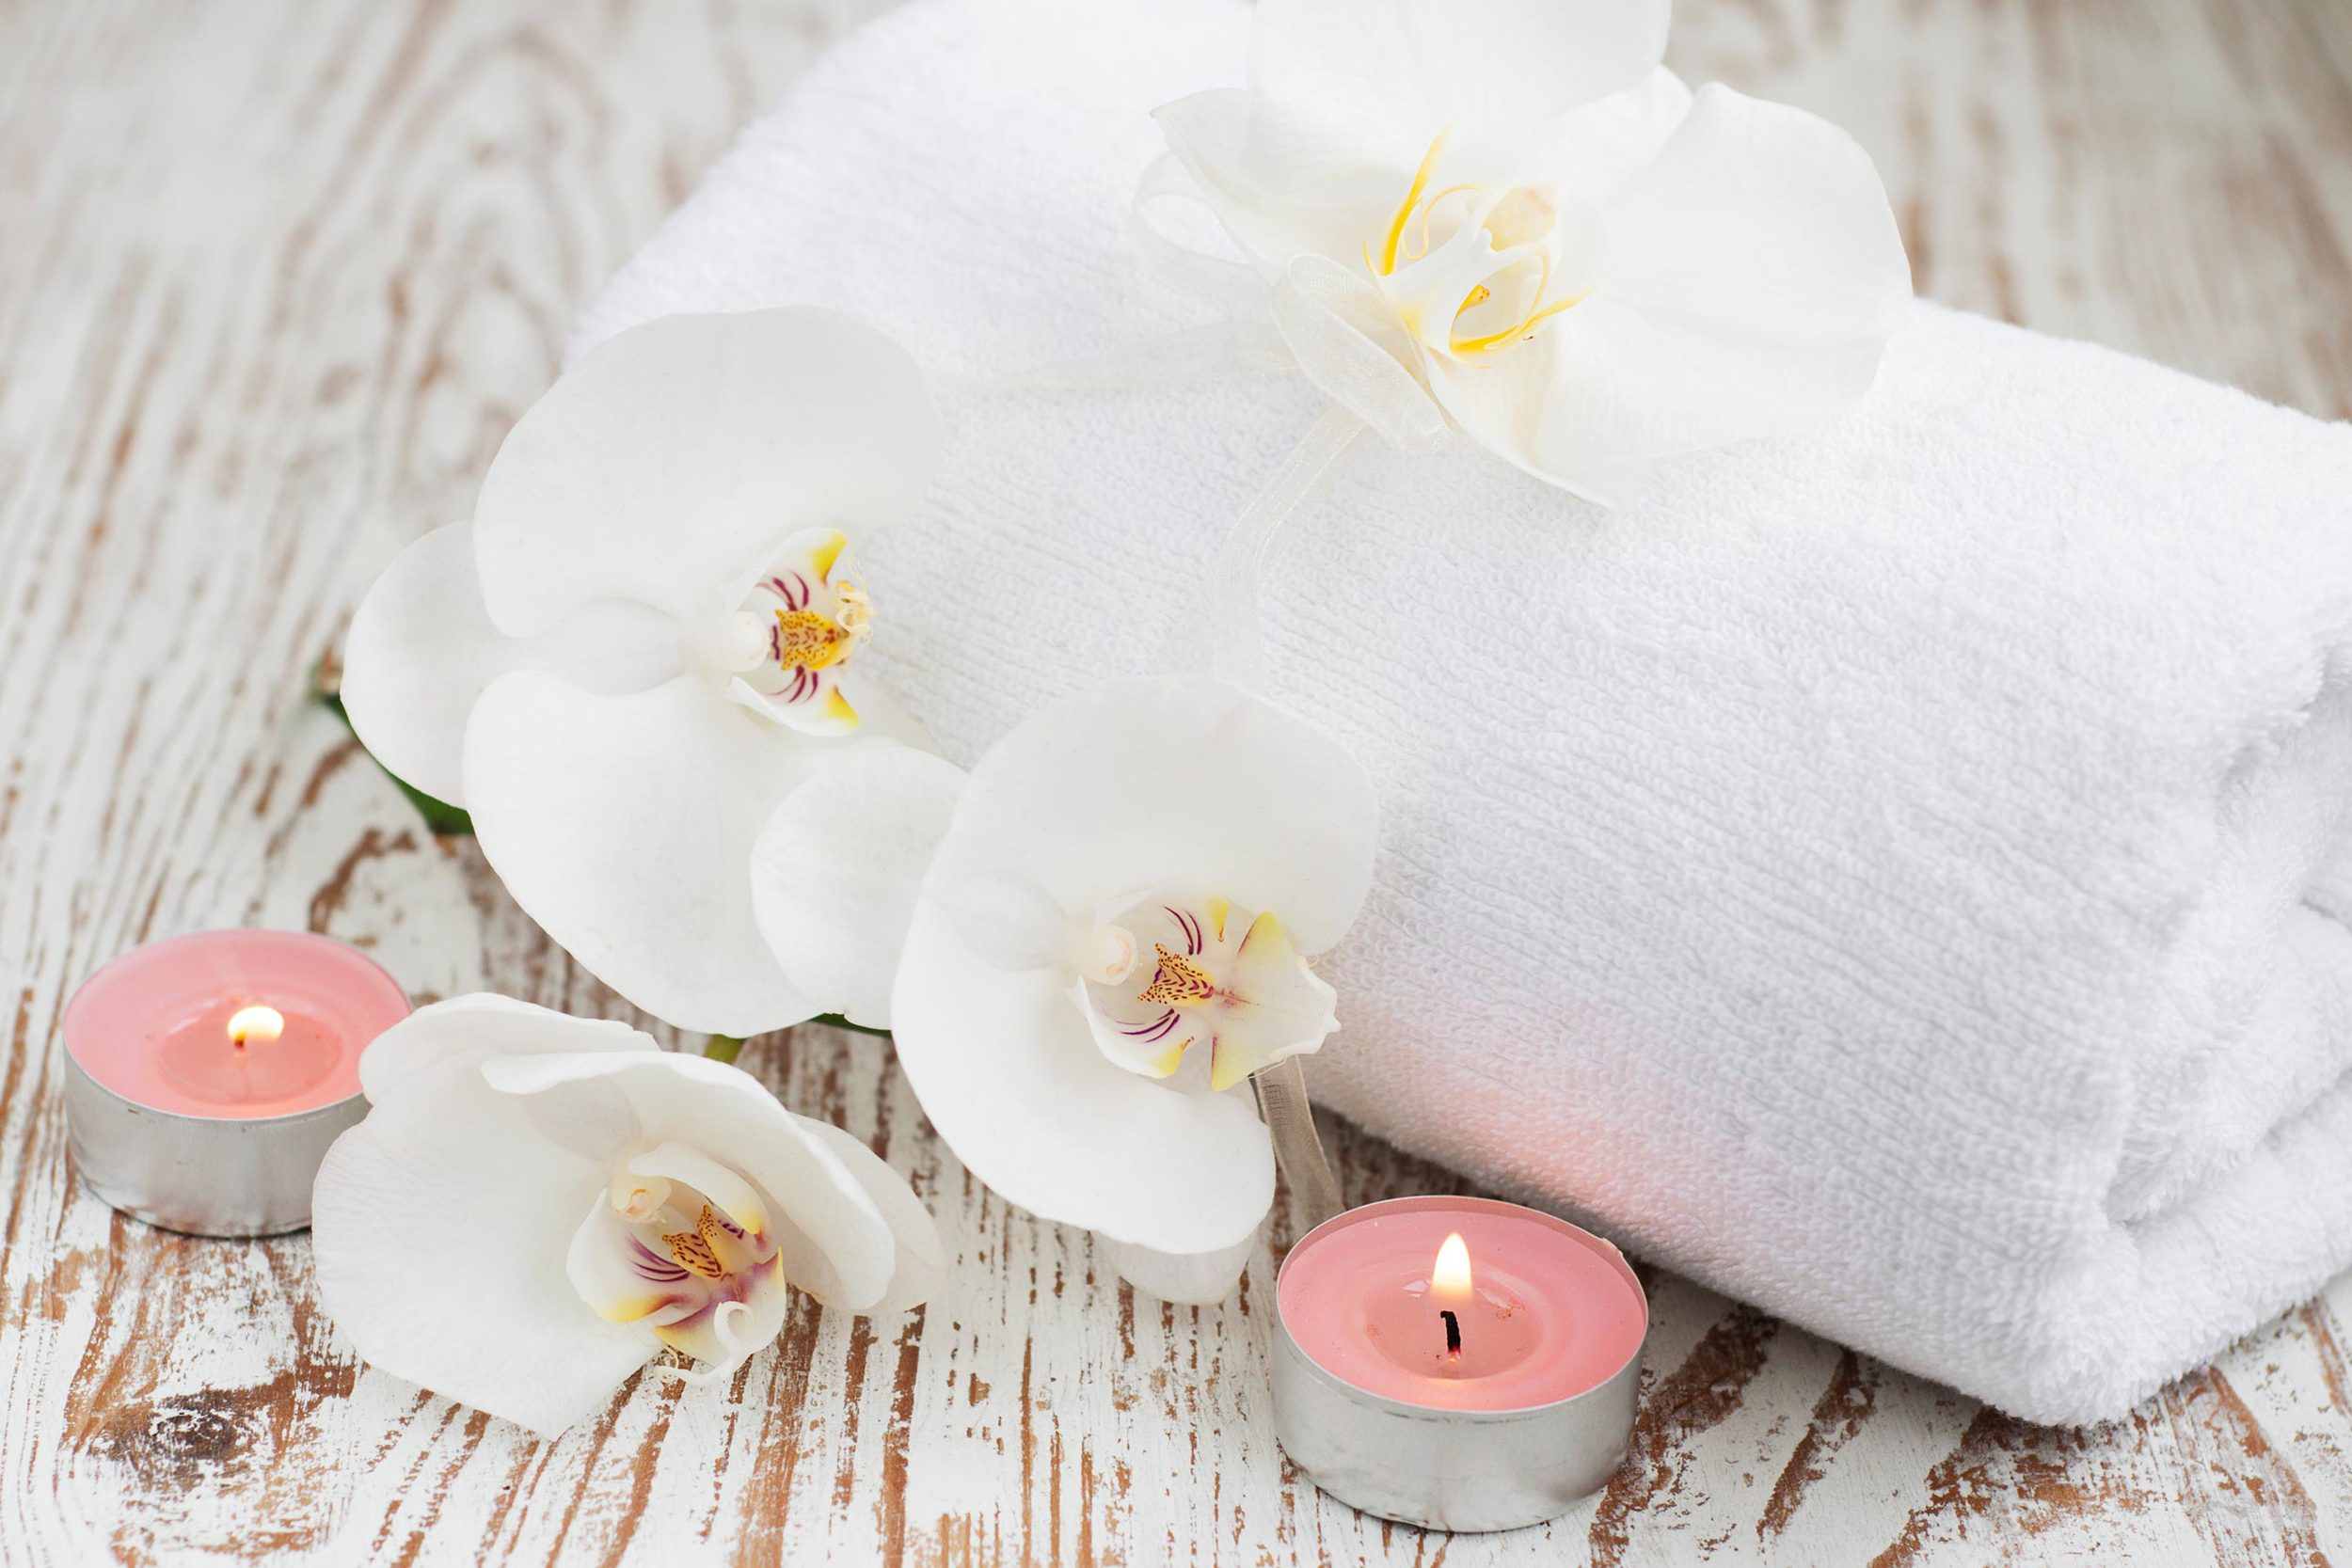 "<p>OVERNIGHT ESCAPE<strong>Designed just for two, the Orchid House Overnight Escape package lets you focus on each other and create memories that last a lifetime.</strong><a href=""/esc"">MORE</a></p>"